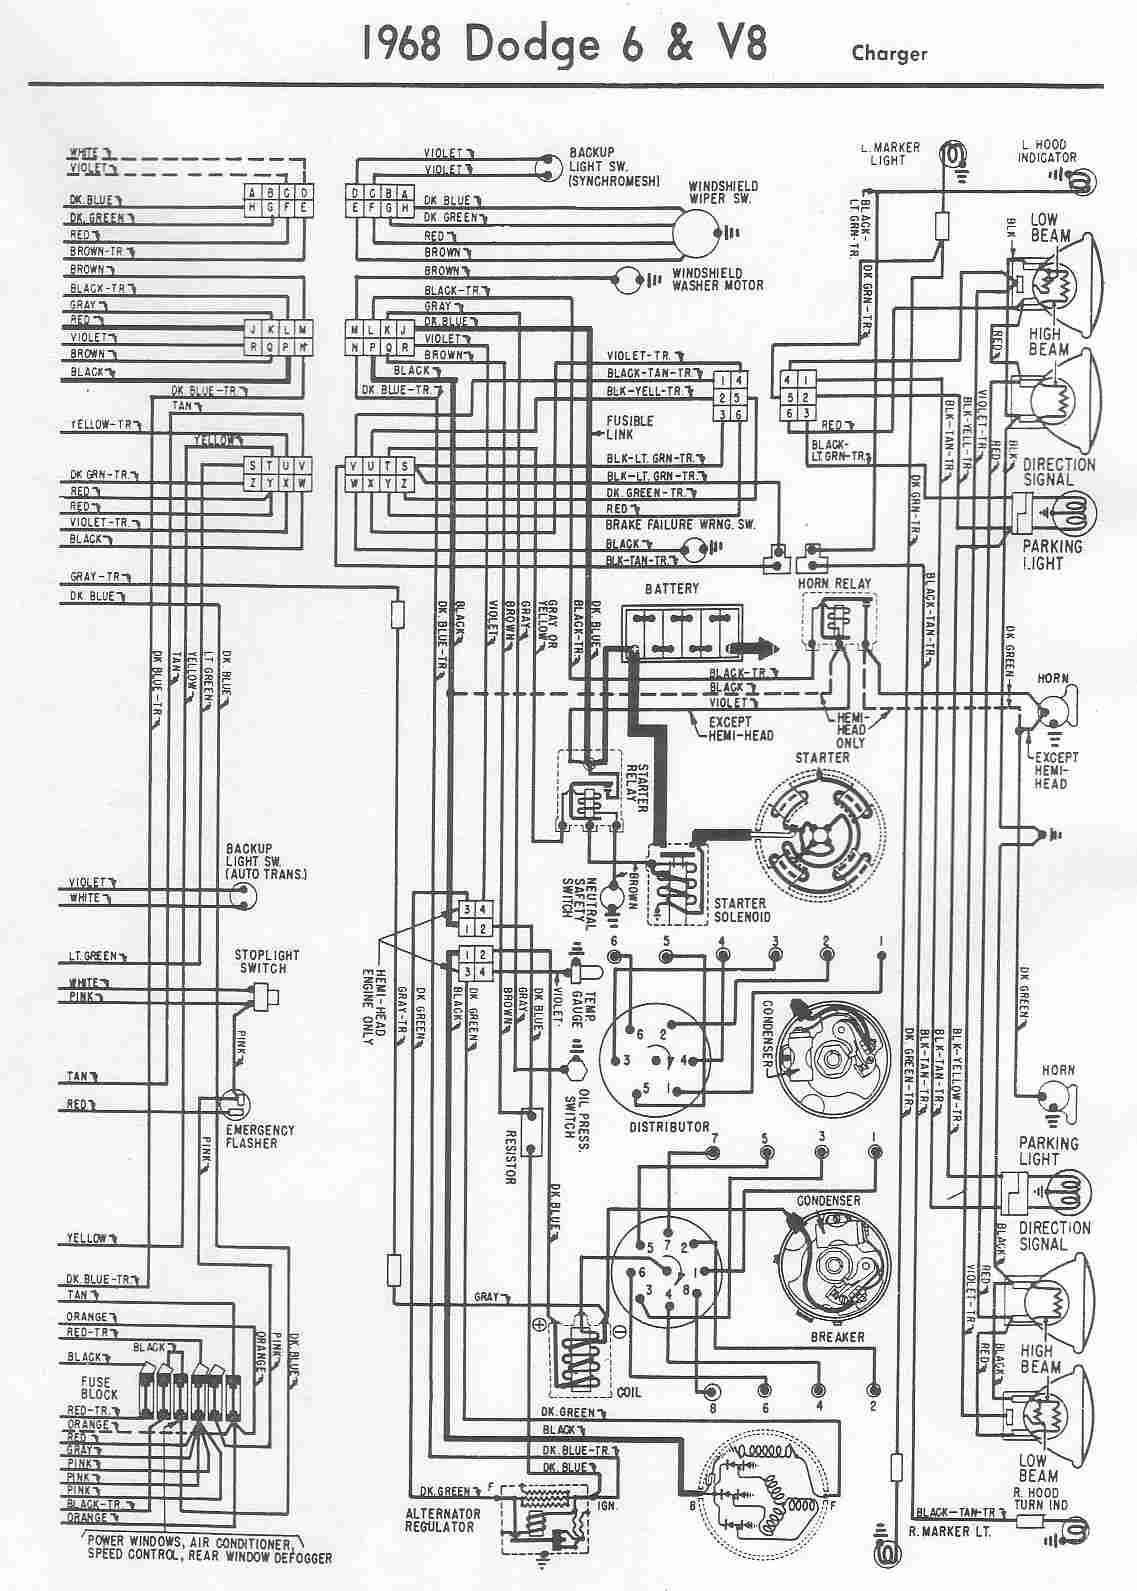 1966 Impala Wiring Diagram Free Download Schematic | Wiring Liry on 1970 impala wiring harness, 1964 impala ignition wiring diagram, 2008 impala wiring harness, 1965 gto wiring harness, 1964 impala alternator wiring, 63 impala wiring harness, 1967 mustang wiring harness, 1961 impala wiring harness, 1969 impala wiring harness, 1964 impala dash harness, 1965 impala wiring harness, 1964 mustang wiring harness, 1964 gto wiring harness, 1966 impala wiring harness, 2000 impala wiring harness, 61 impala wiring harness, 1963 impala wiring harness, 1967 impala wiring harness, 2001 impala wiring harness, 64 impala wiring harness,